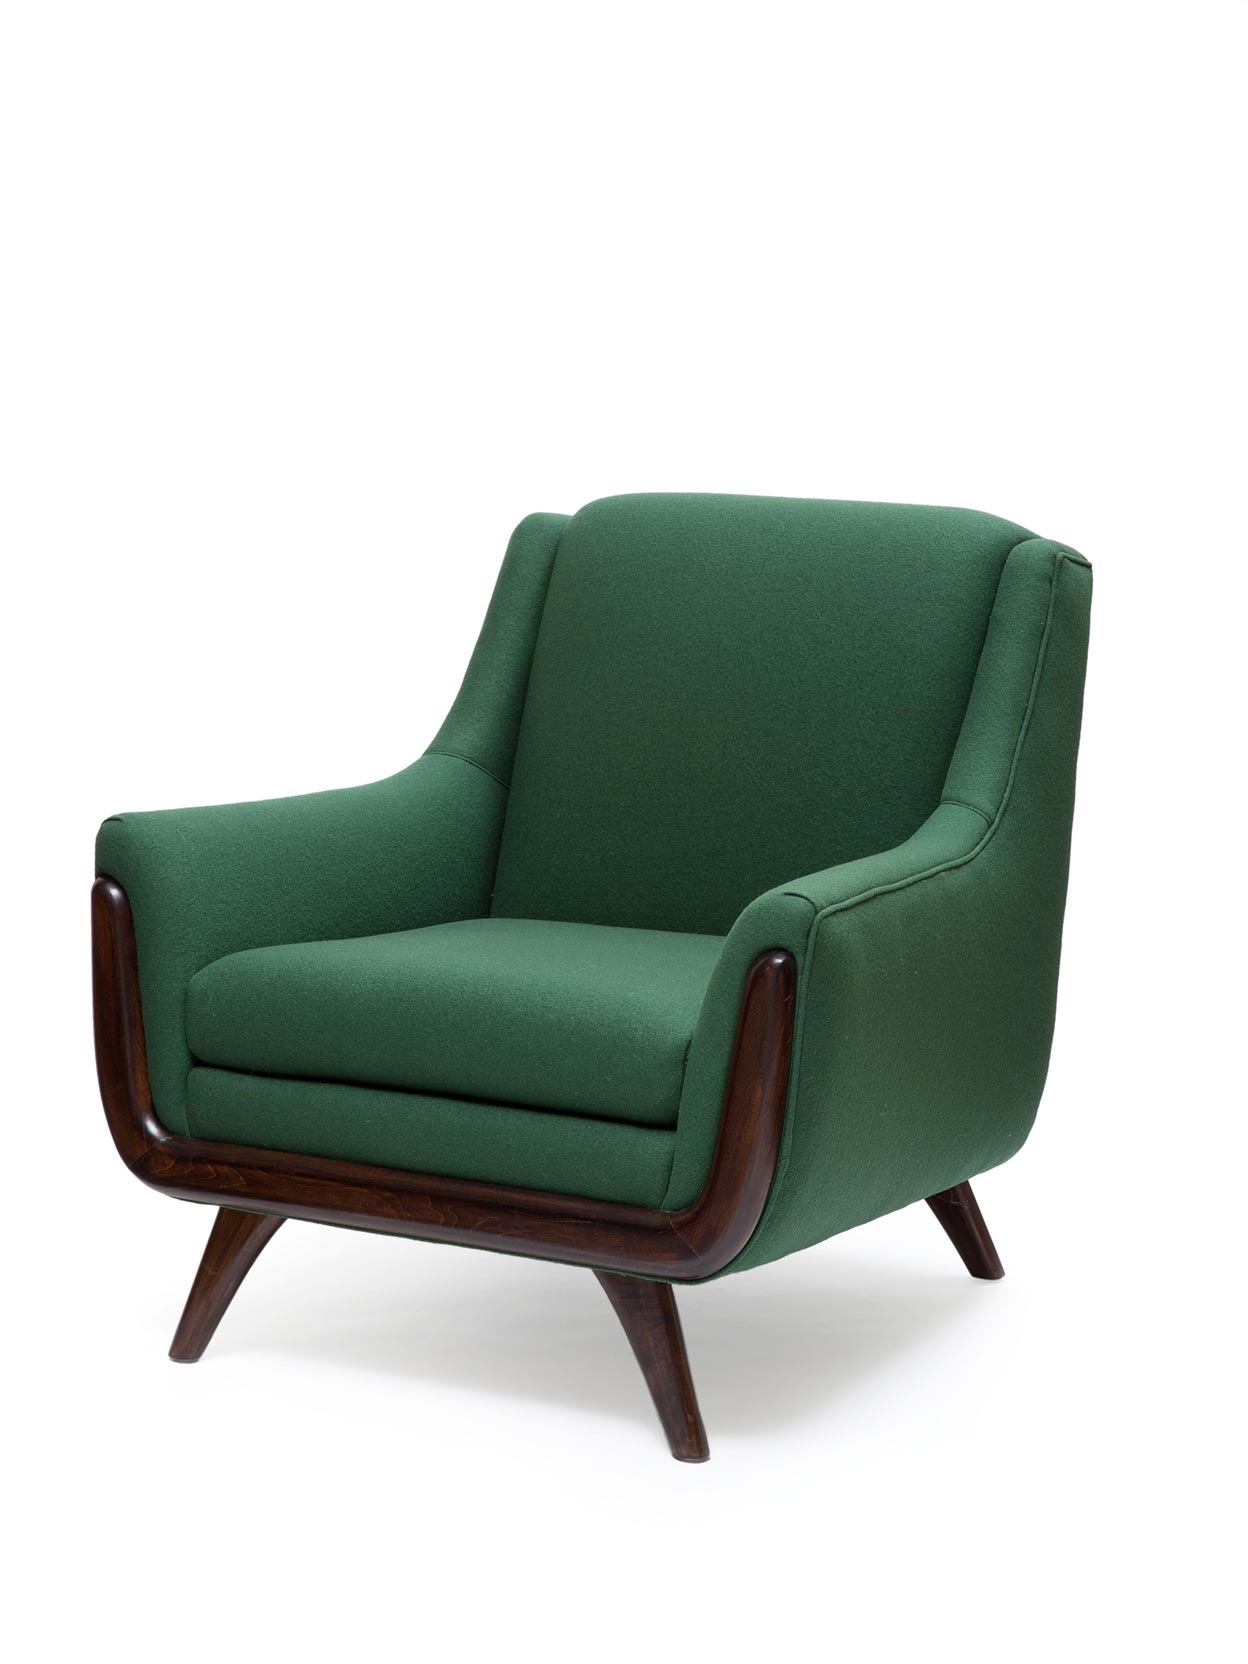 Trudeau Chair VINTAGE0061